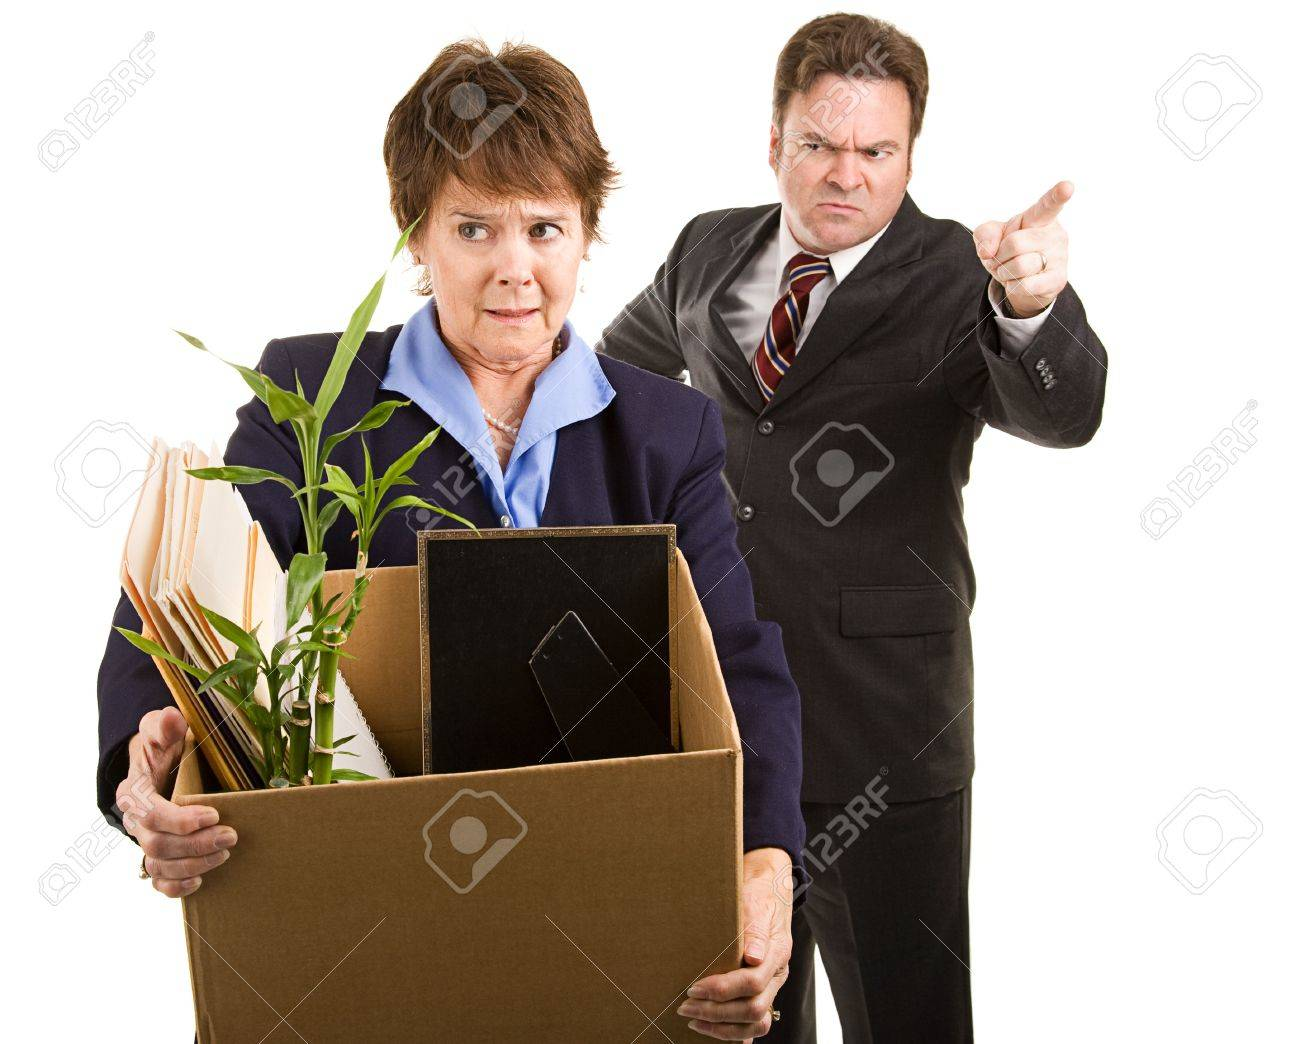 fired corporate employee holding her belongings in a cardboard fired corporate employee holding her belongings in a cardboard box as her boss orders her